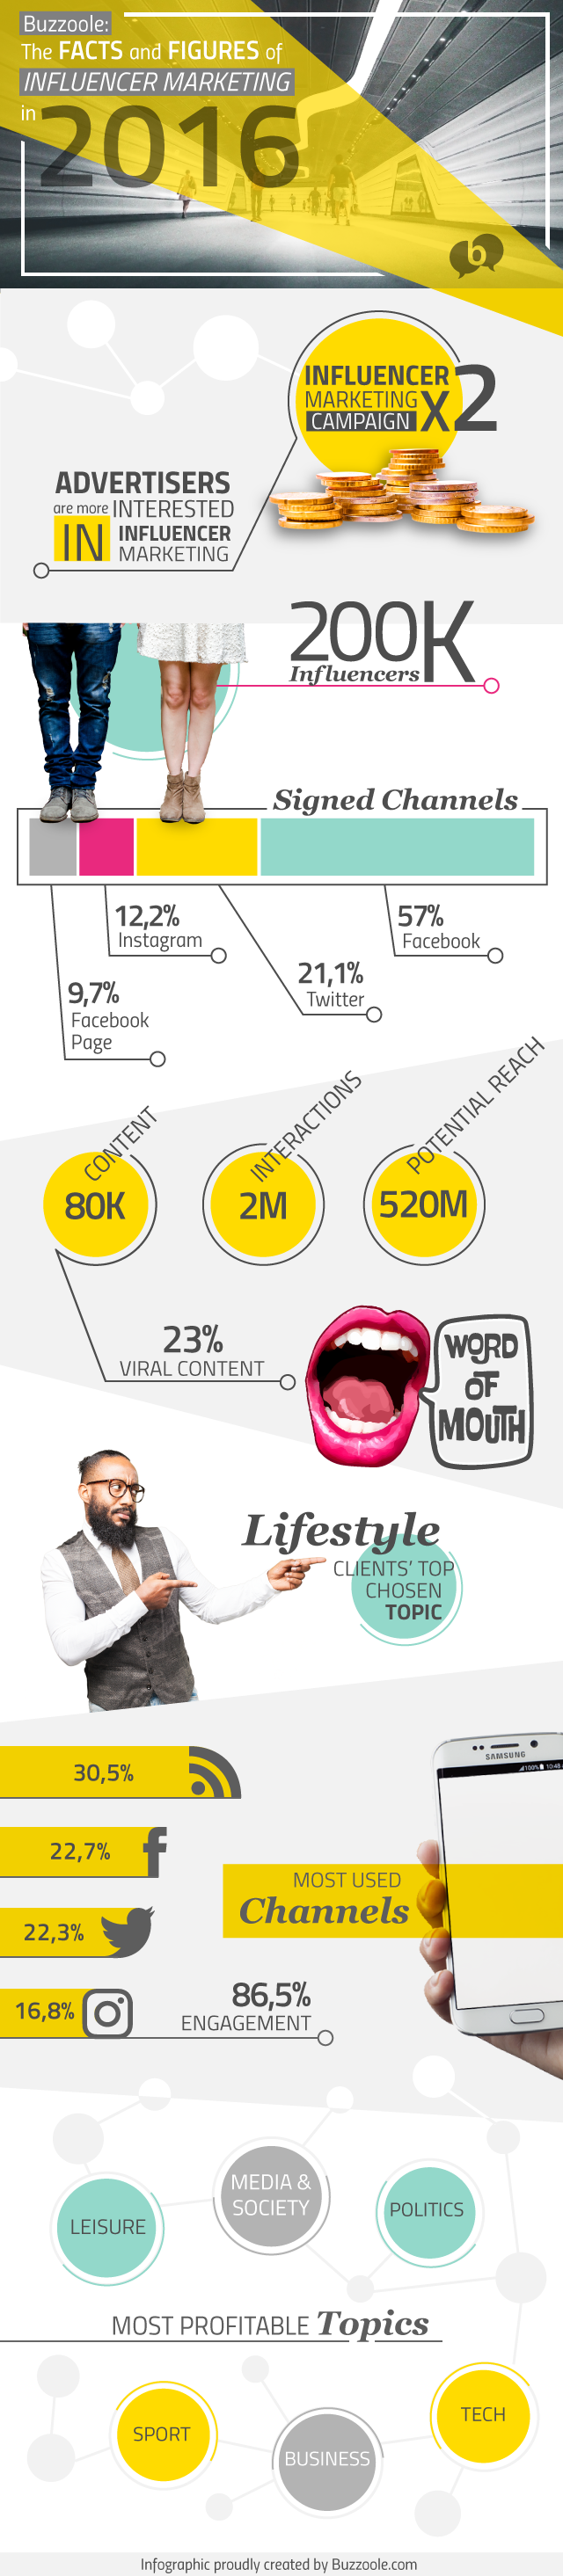 Buzzole: 2016 fact and figures infographic